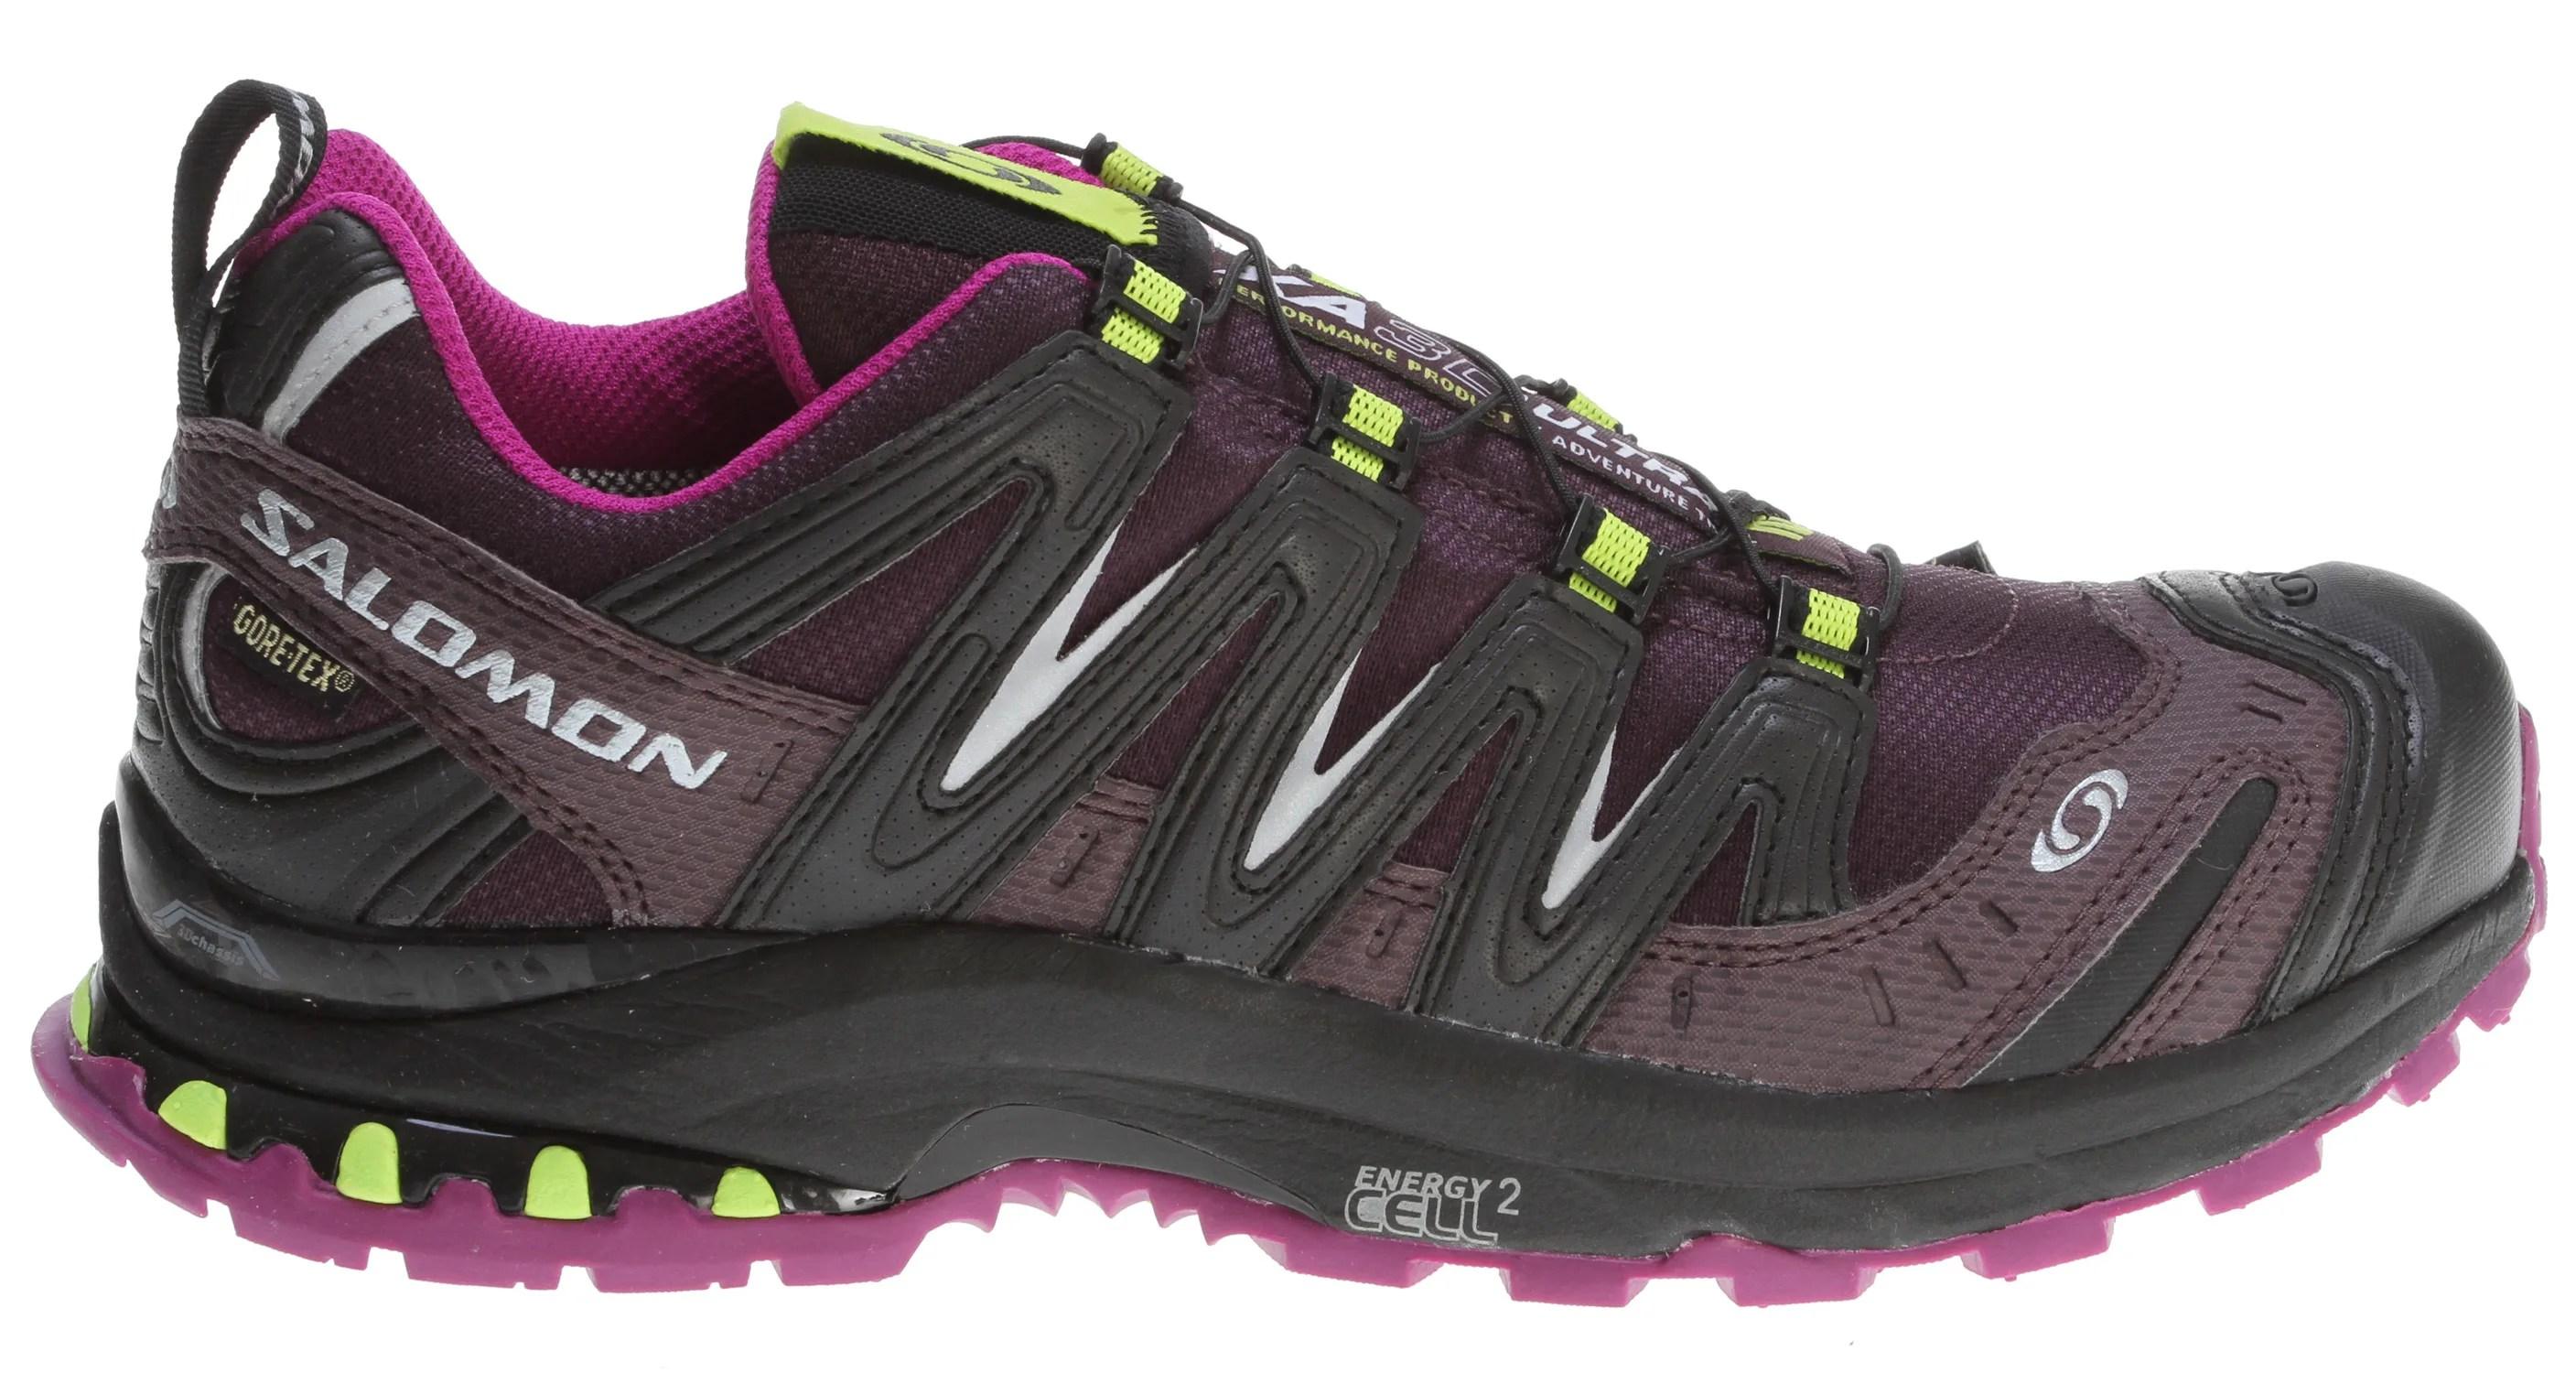 Salomon Xa Pro 3d Ultra 2 Gtx Trail Running Shoes Womens